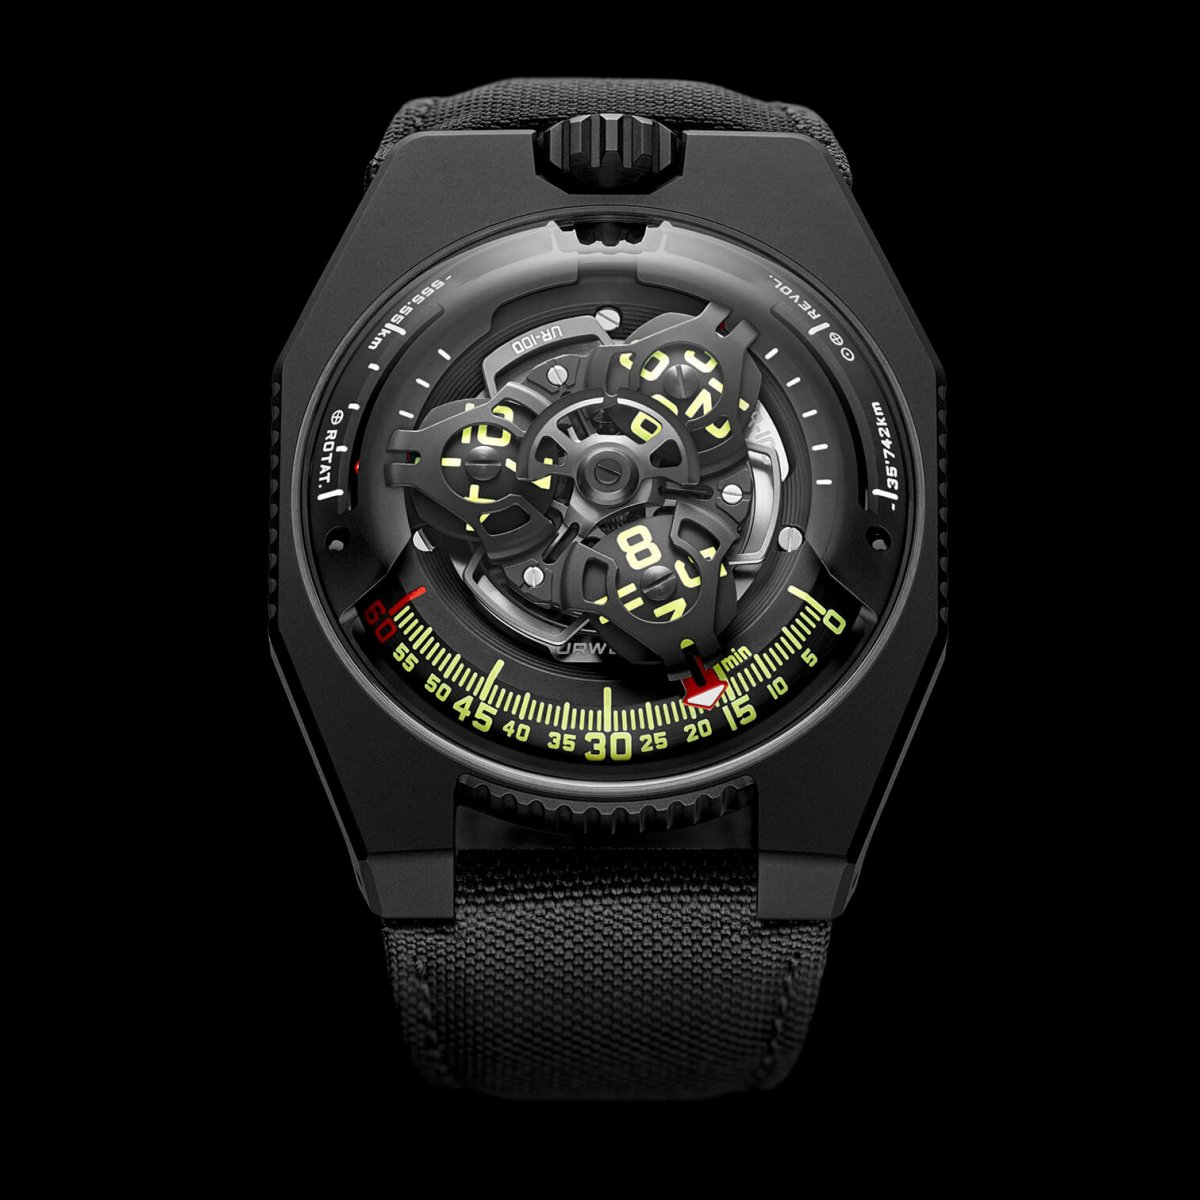 https://www.urwerk.com/sites/default/files/styles/square_ps/public/gallery/black-1.jpg?itok=a-2hSpwm